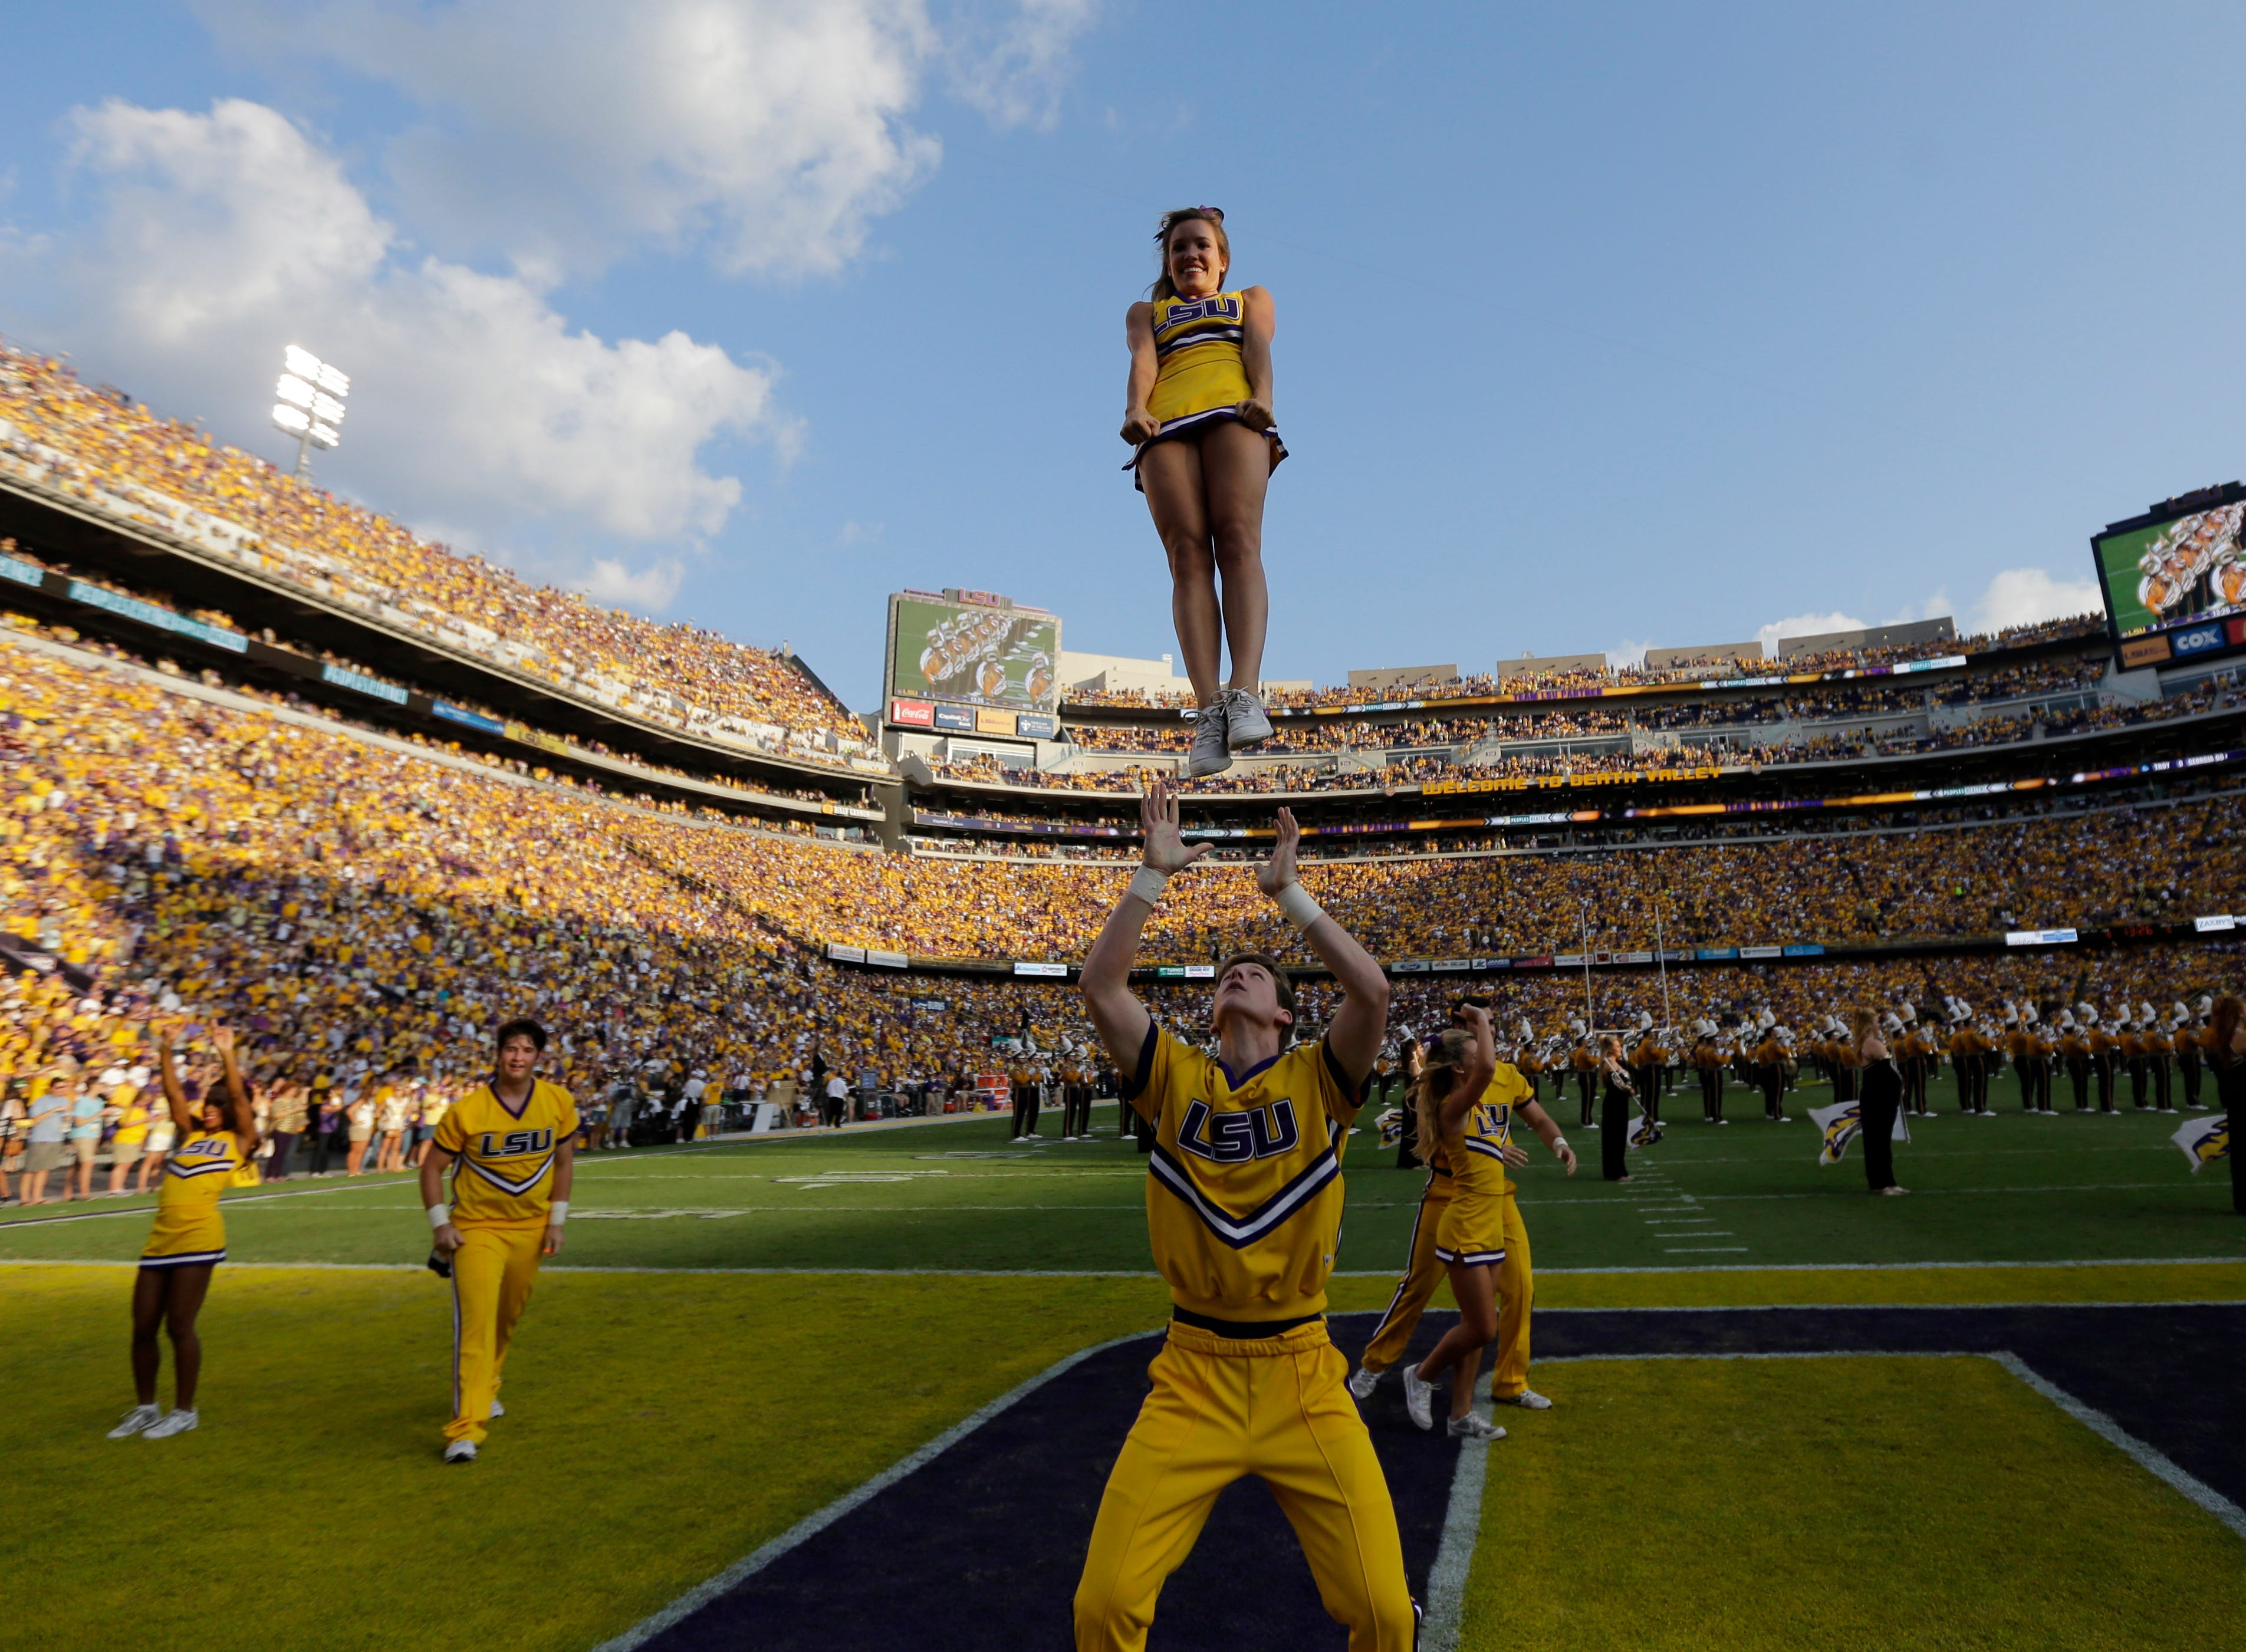 LSU cheerleaders perform before an NCAA college football game against Mississippi State in Baton Rouge, La., Saturday, Sept. 20, 2014. (AP Photo/Gerald Herbert)